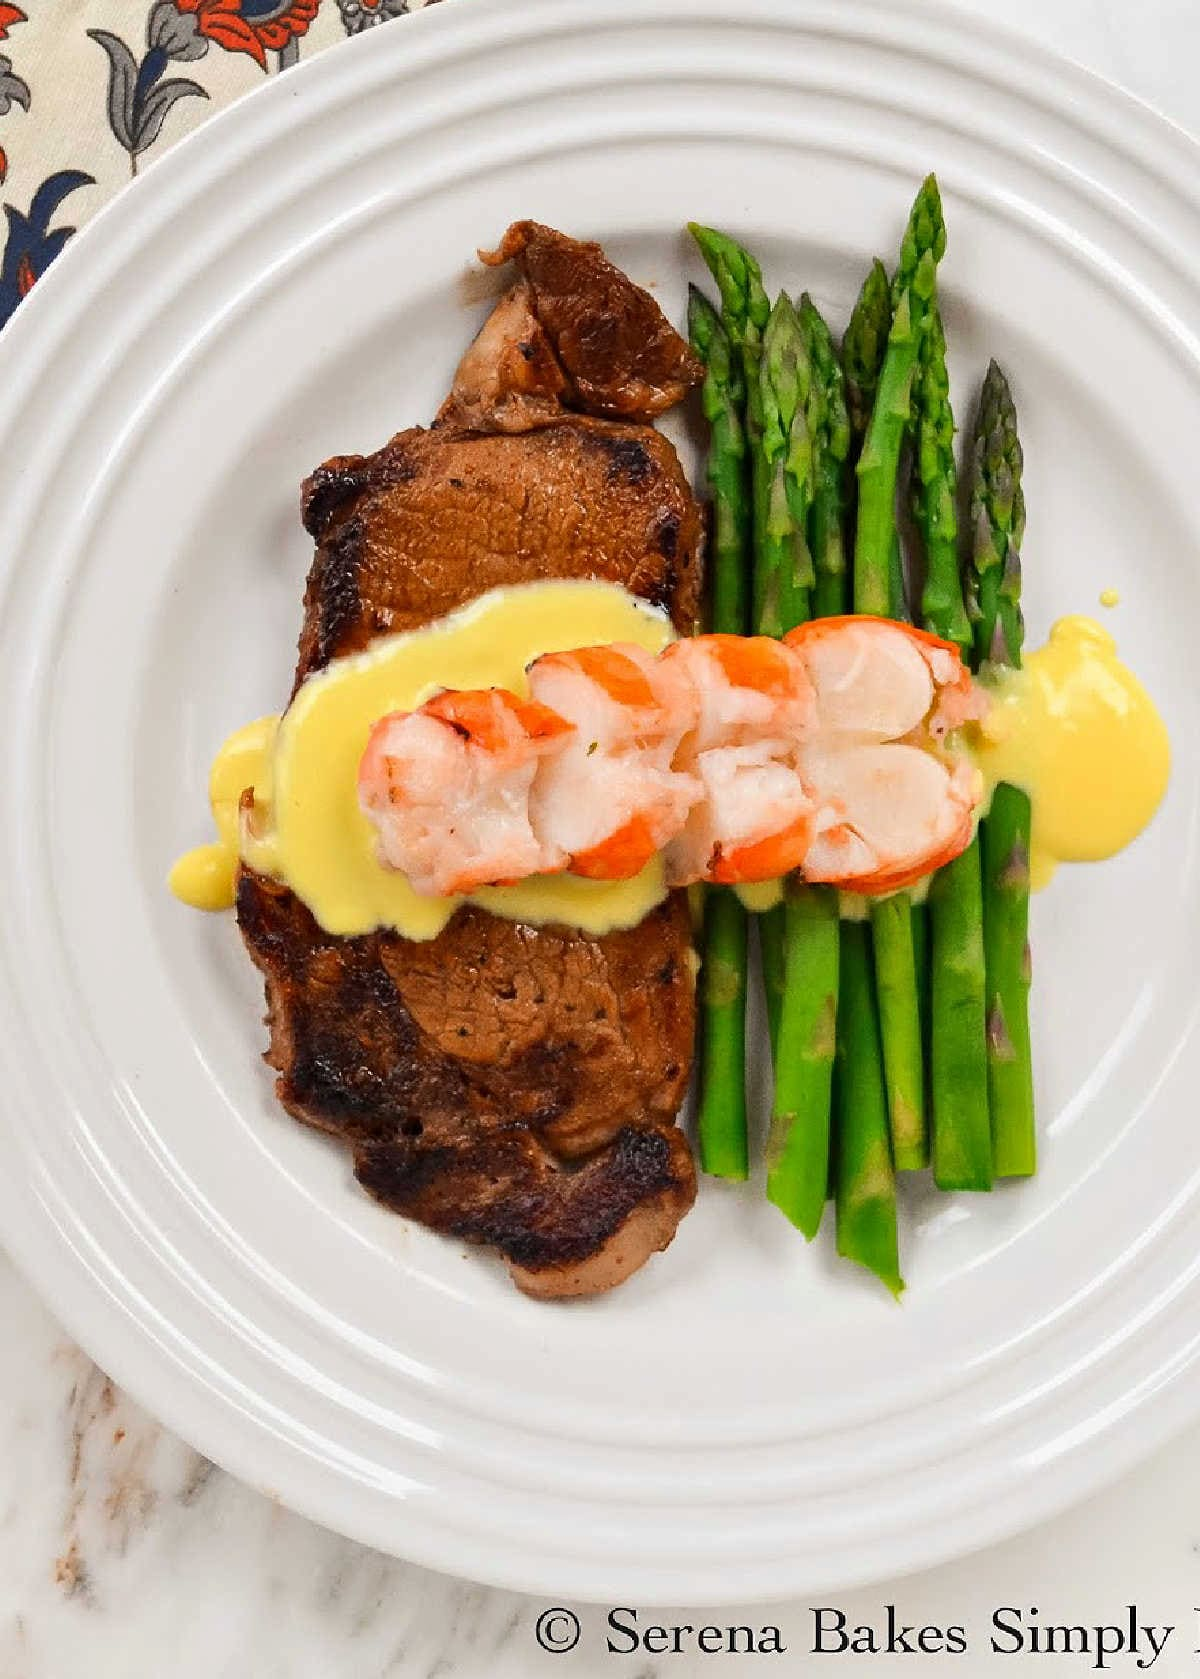 Perfectly Pan Seared Steak covered with Hollandaise Sauce and Sliced Lobster Tail with Asparagus on the side on a white plate.